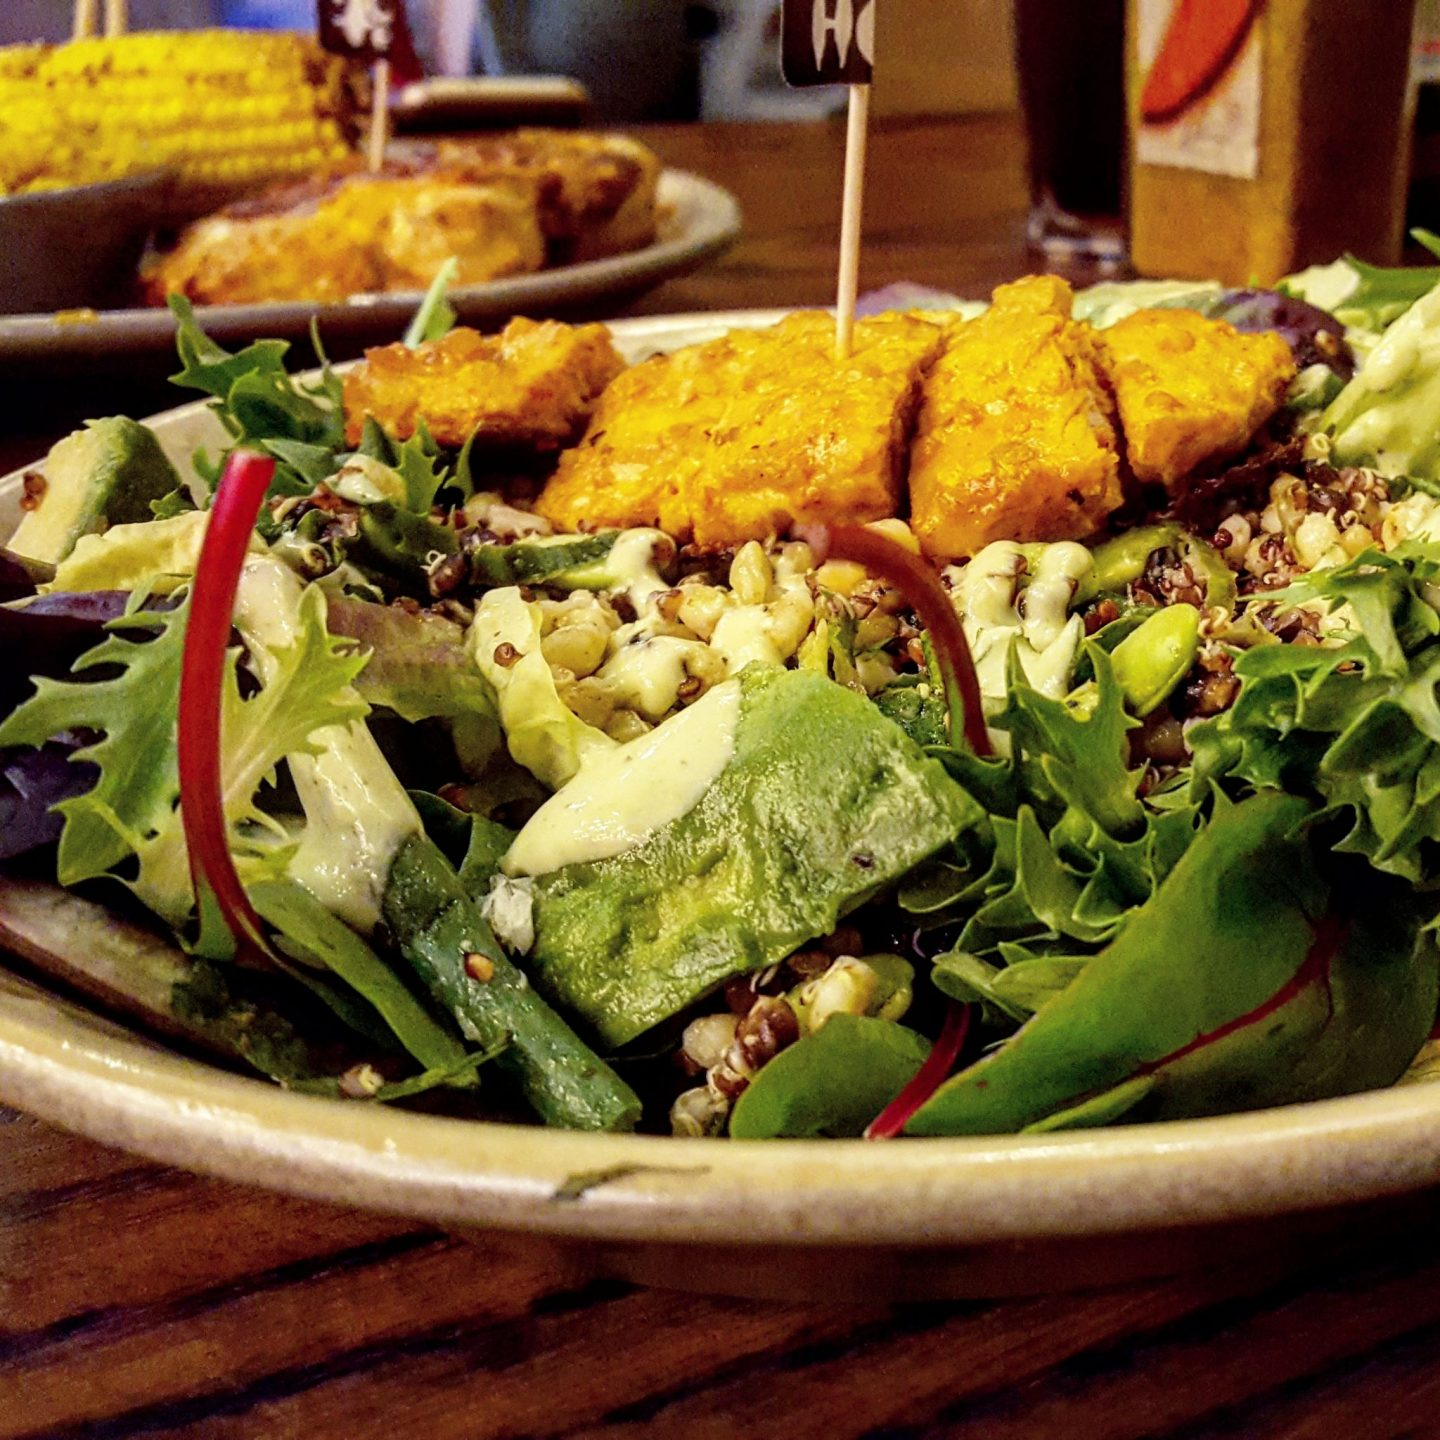 Nando's Healthy Options, O2 Centre Finchley Road